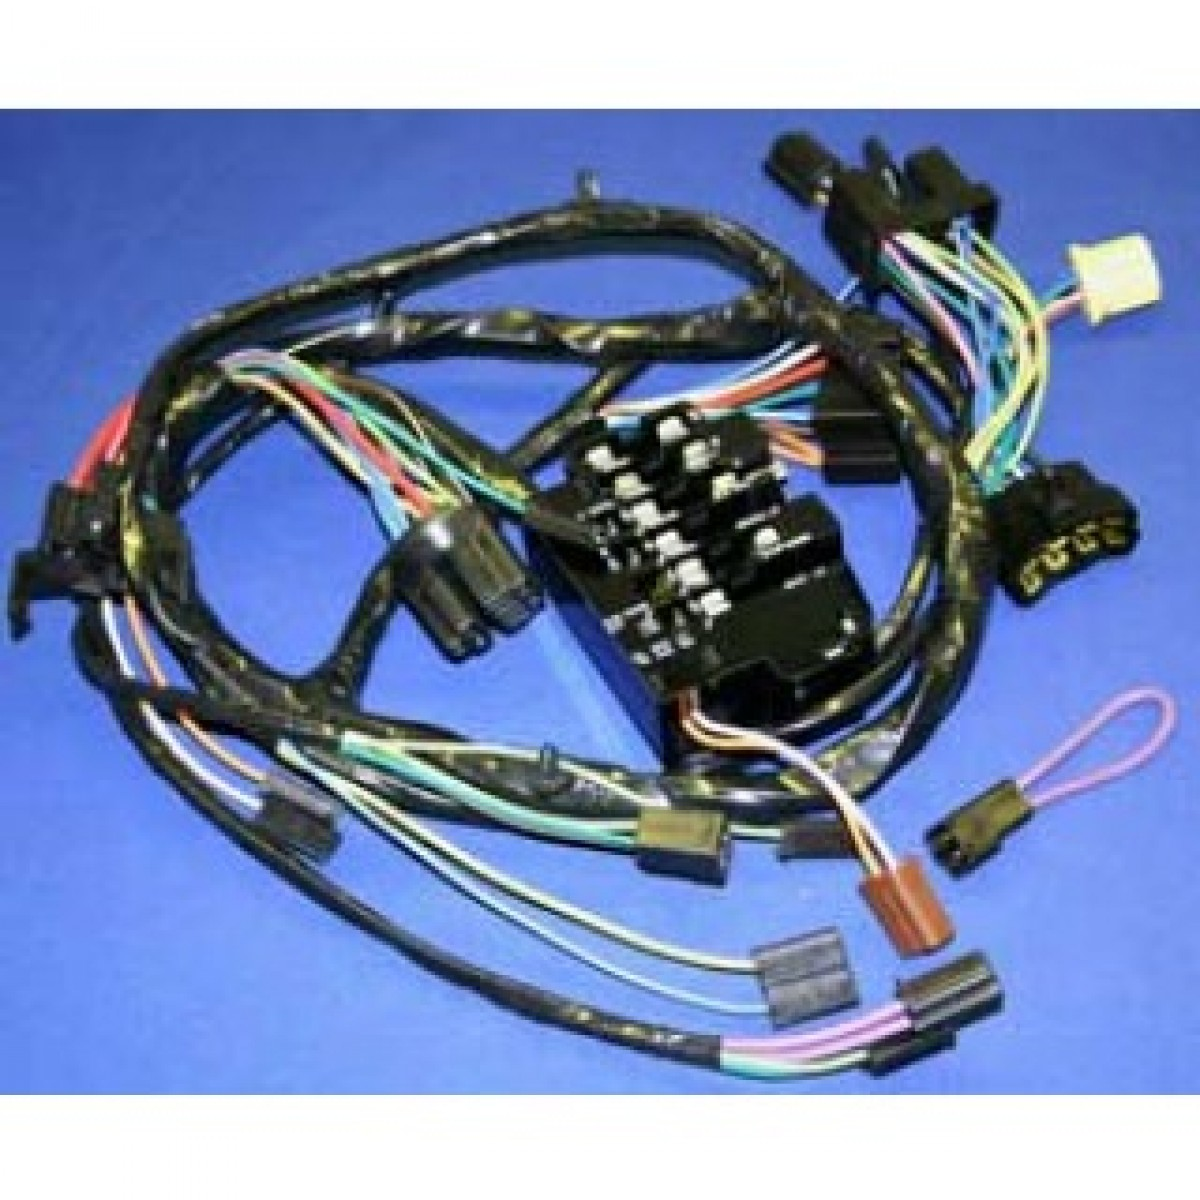 69 chevy c10 wiring harness 69 free engine image for 1989 chevy truck  engine wiring harness